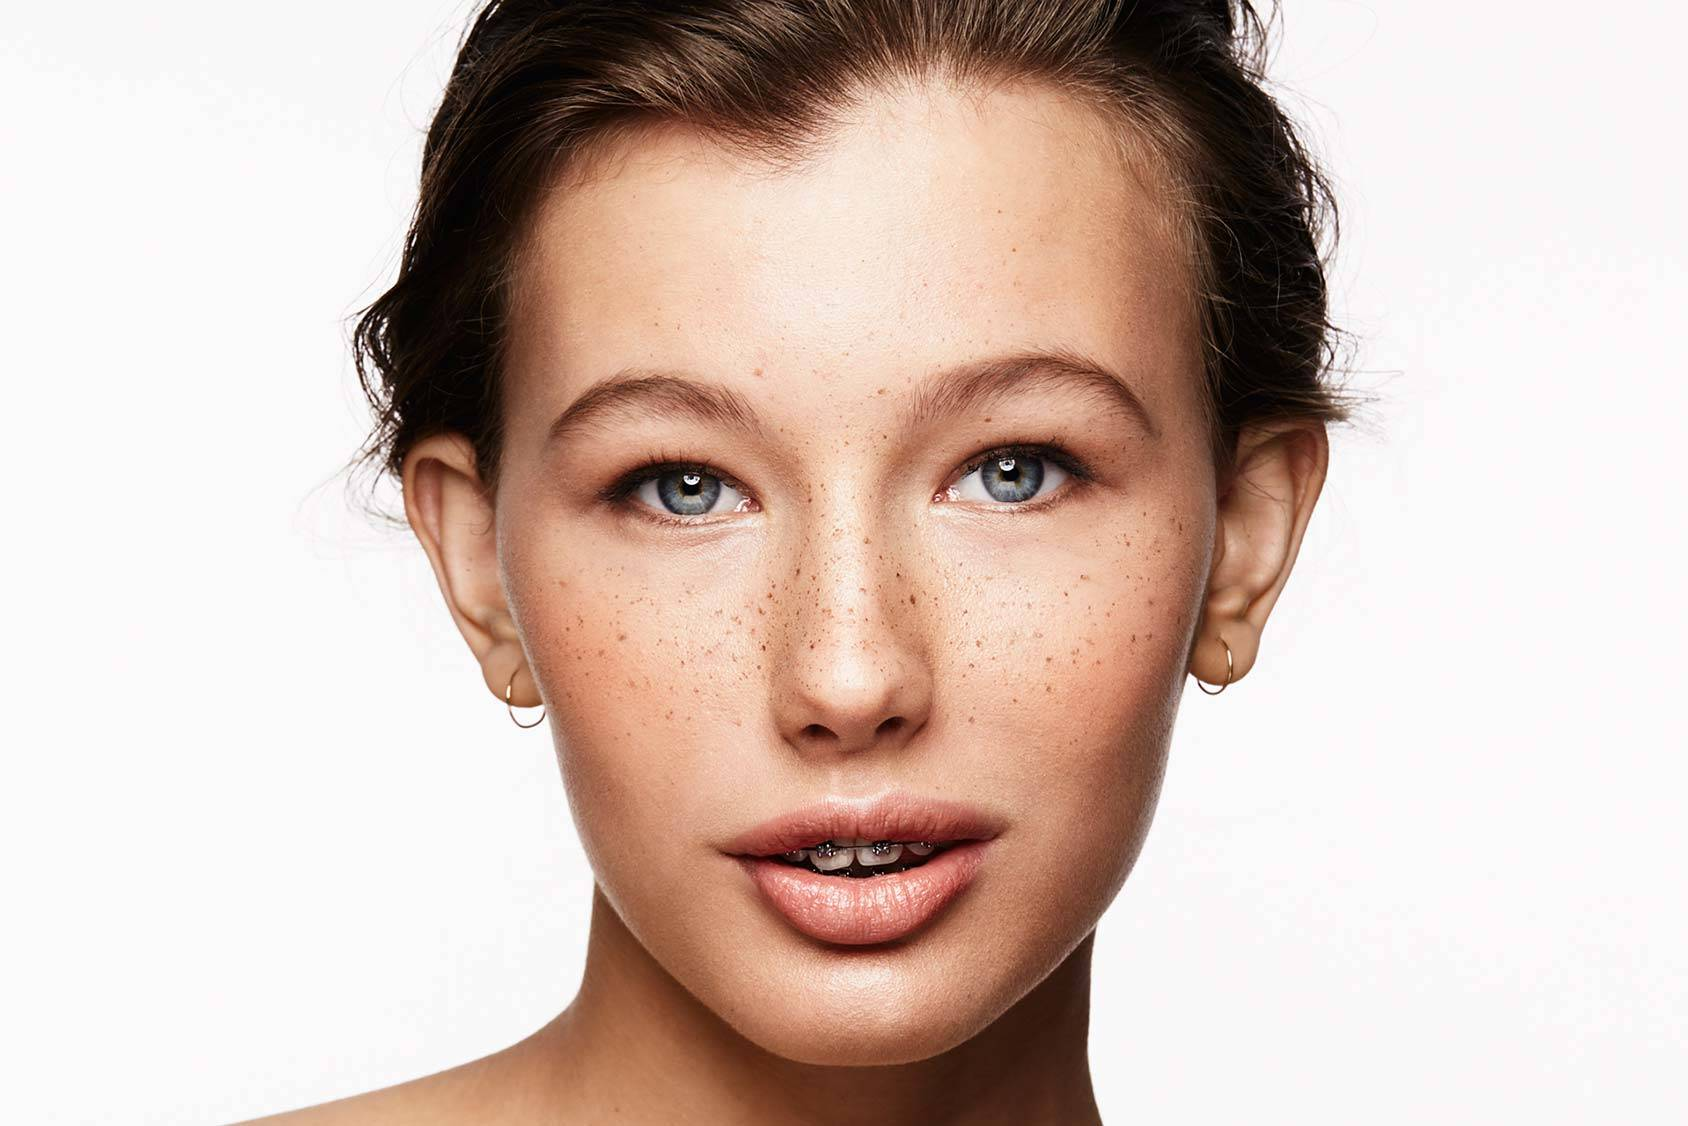 Fix a fresh spring look with fake freckles – in just six easy steps.